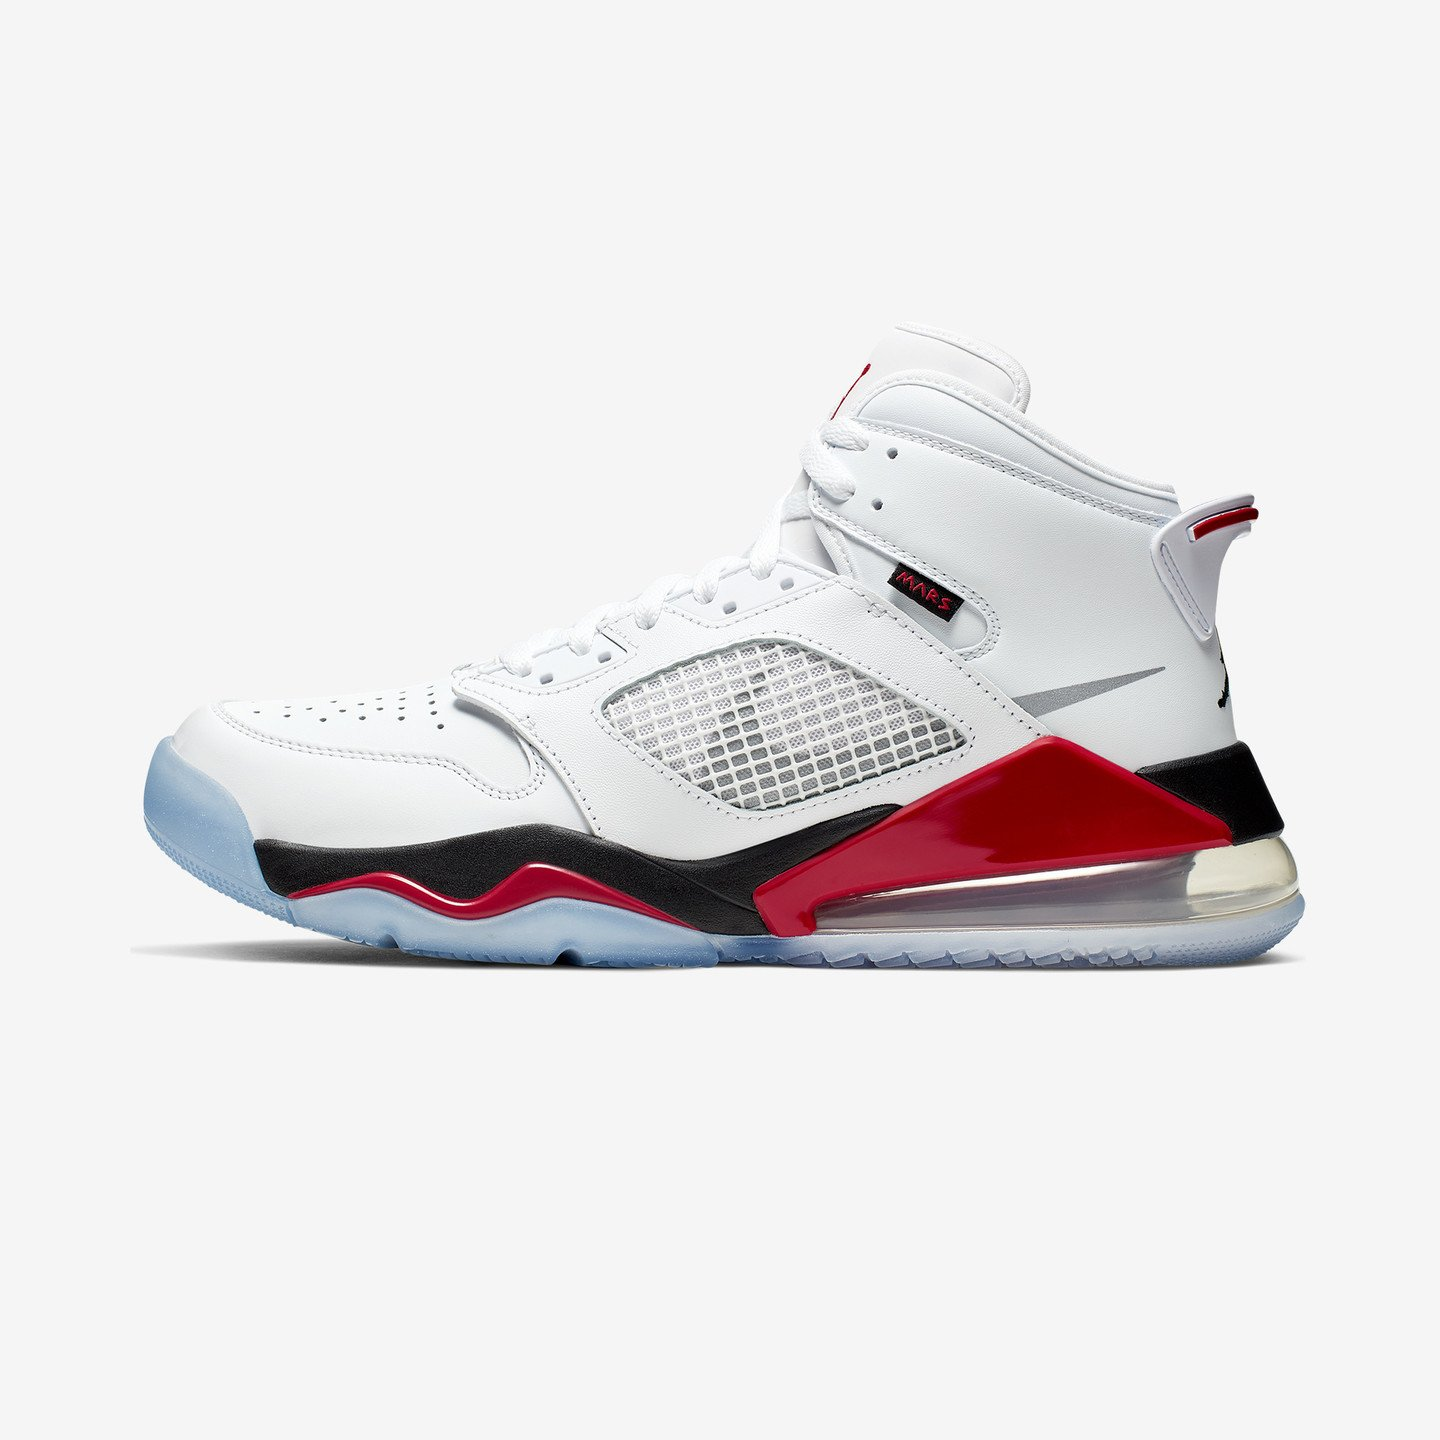 Jordan Air Jordan Mars 270 'Fire Red' White / Fire Red / Black CD7070-100